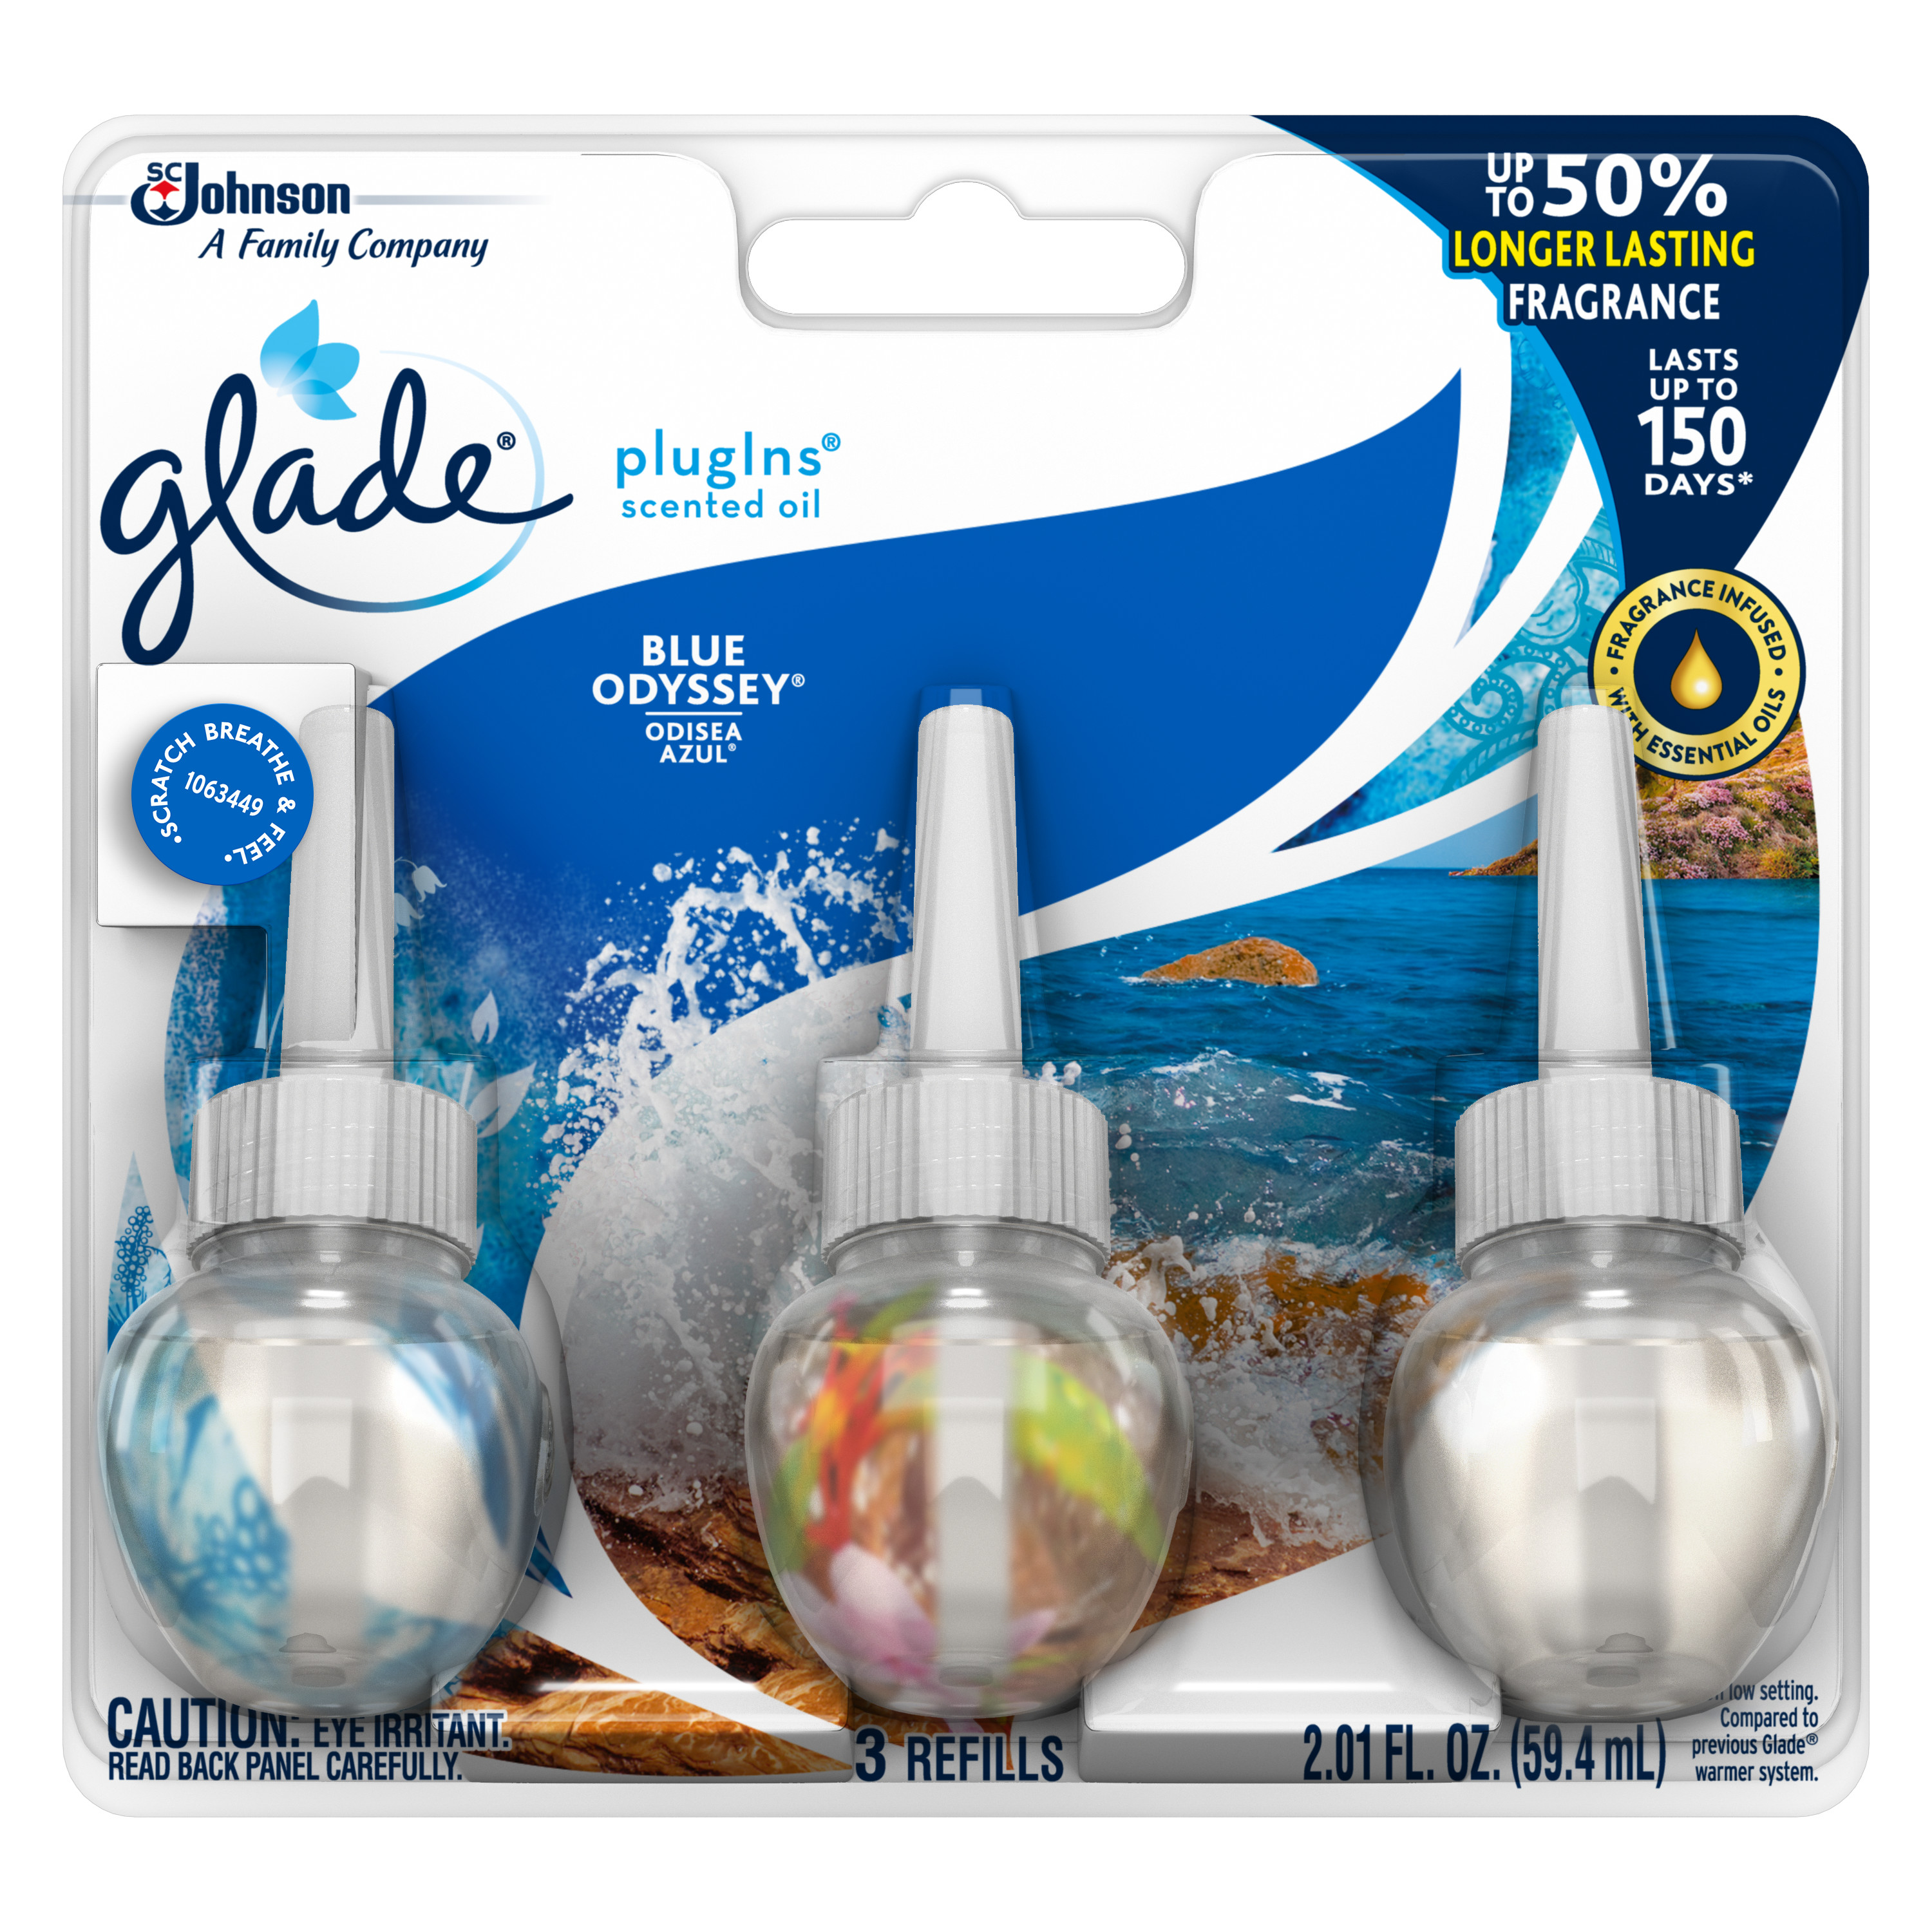 Glade PlugIns Scented Oil Refill Blue Odyssey, Essential Oil Infused Wall Plug In, Up to 50 Days of Continuous Fragrance, 2.01 FL OZ, Pack of 3